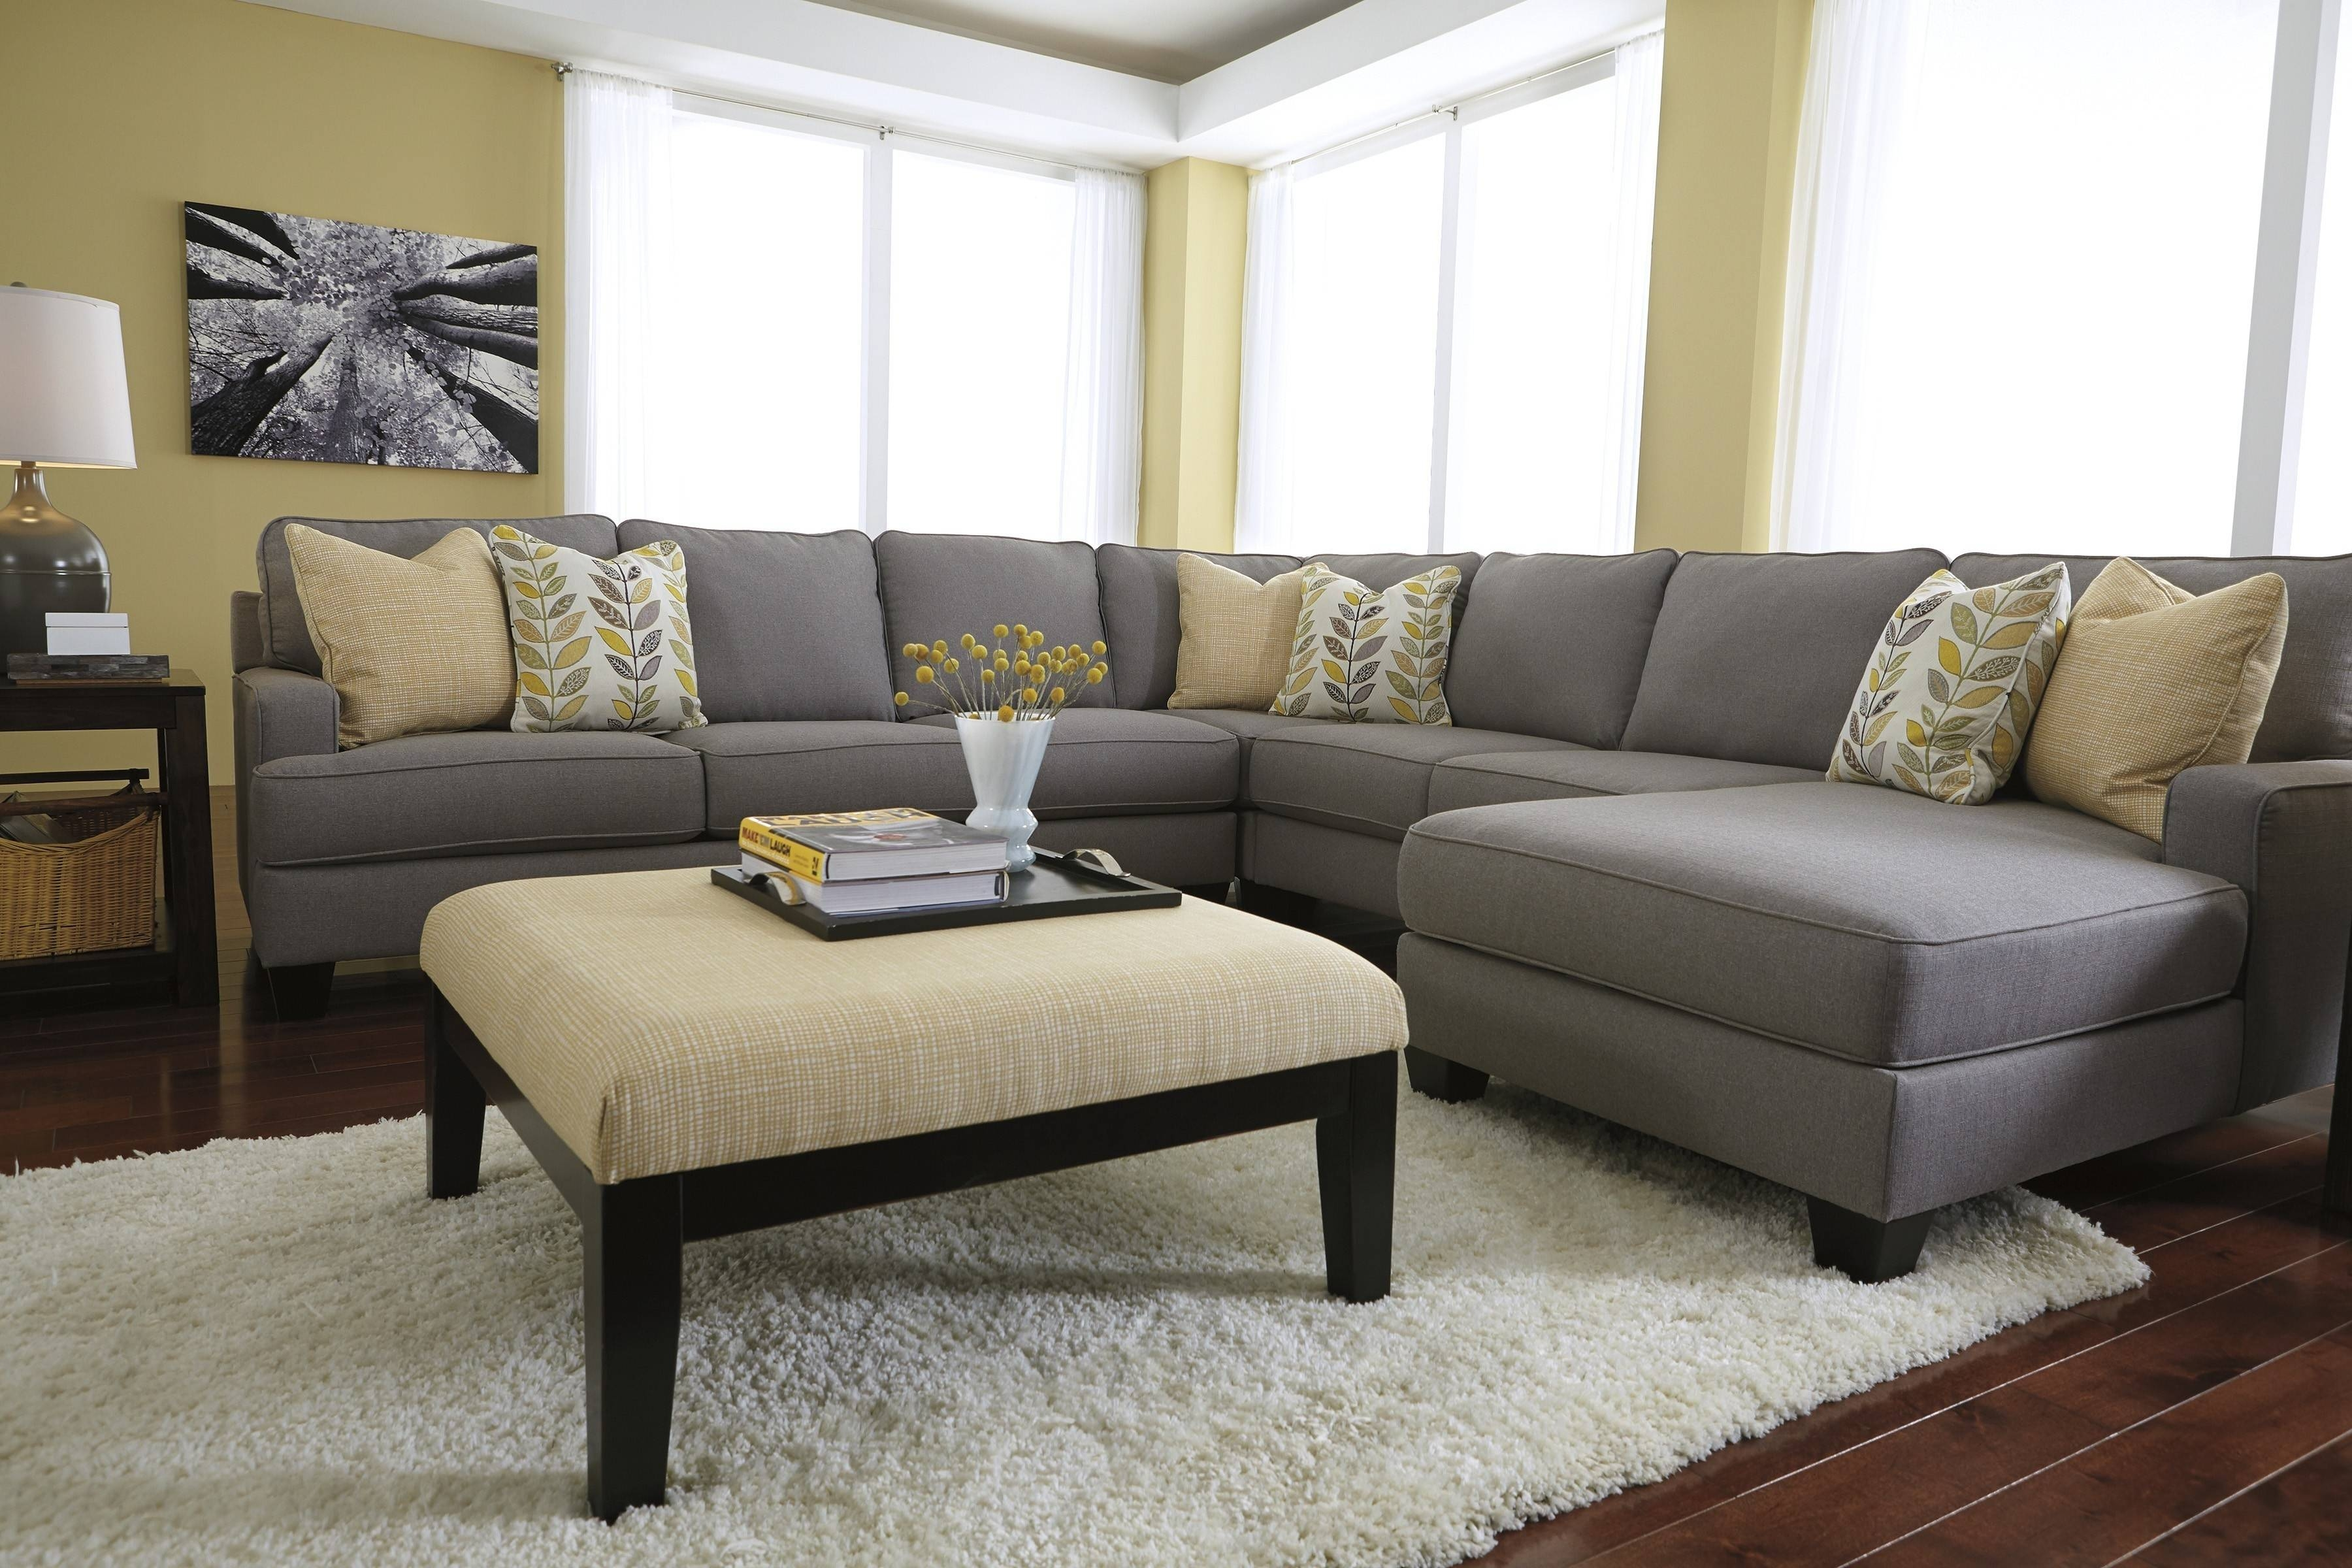 Oversized Sectional Sofas Canada | Tehranmix Decoration intended for Large Sofa Sectionals (Image 21 of 25)